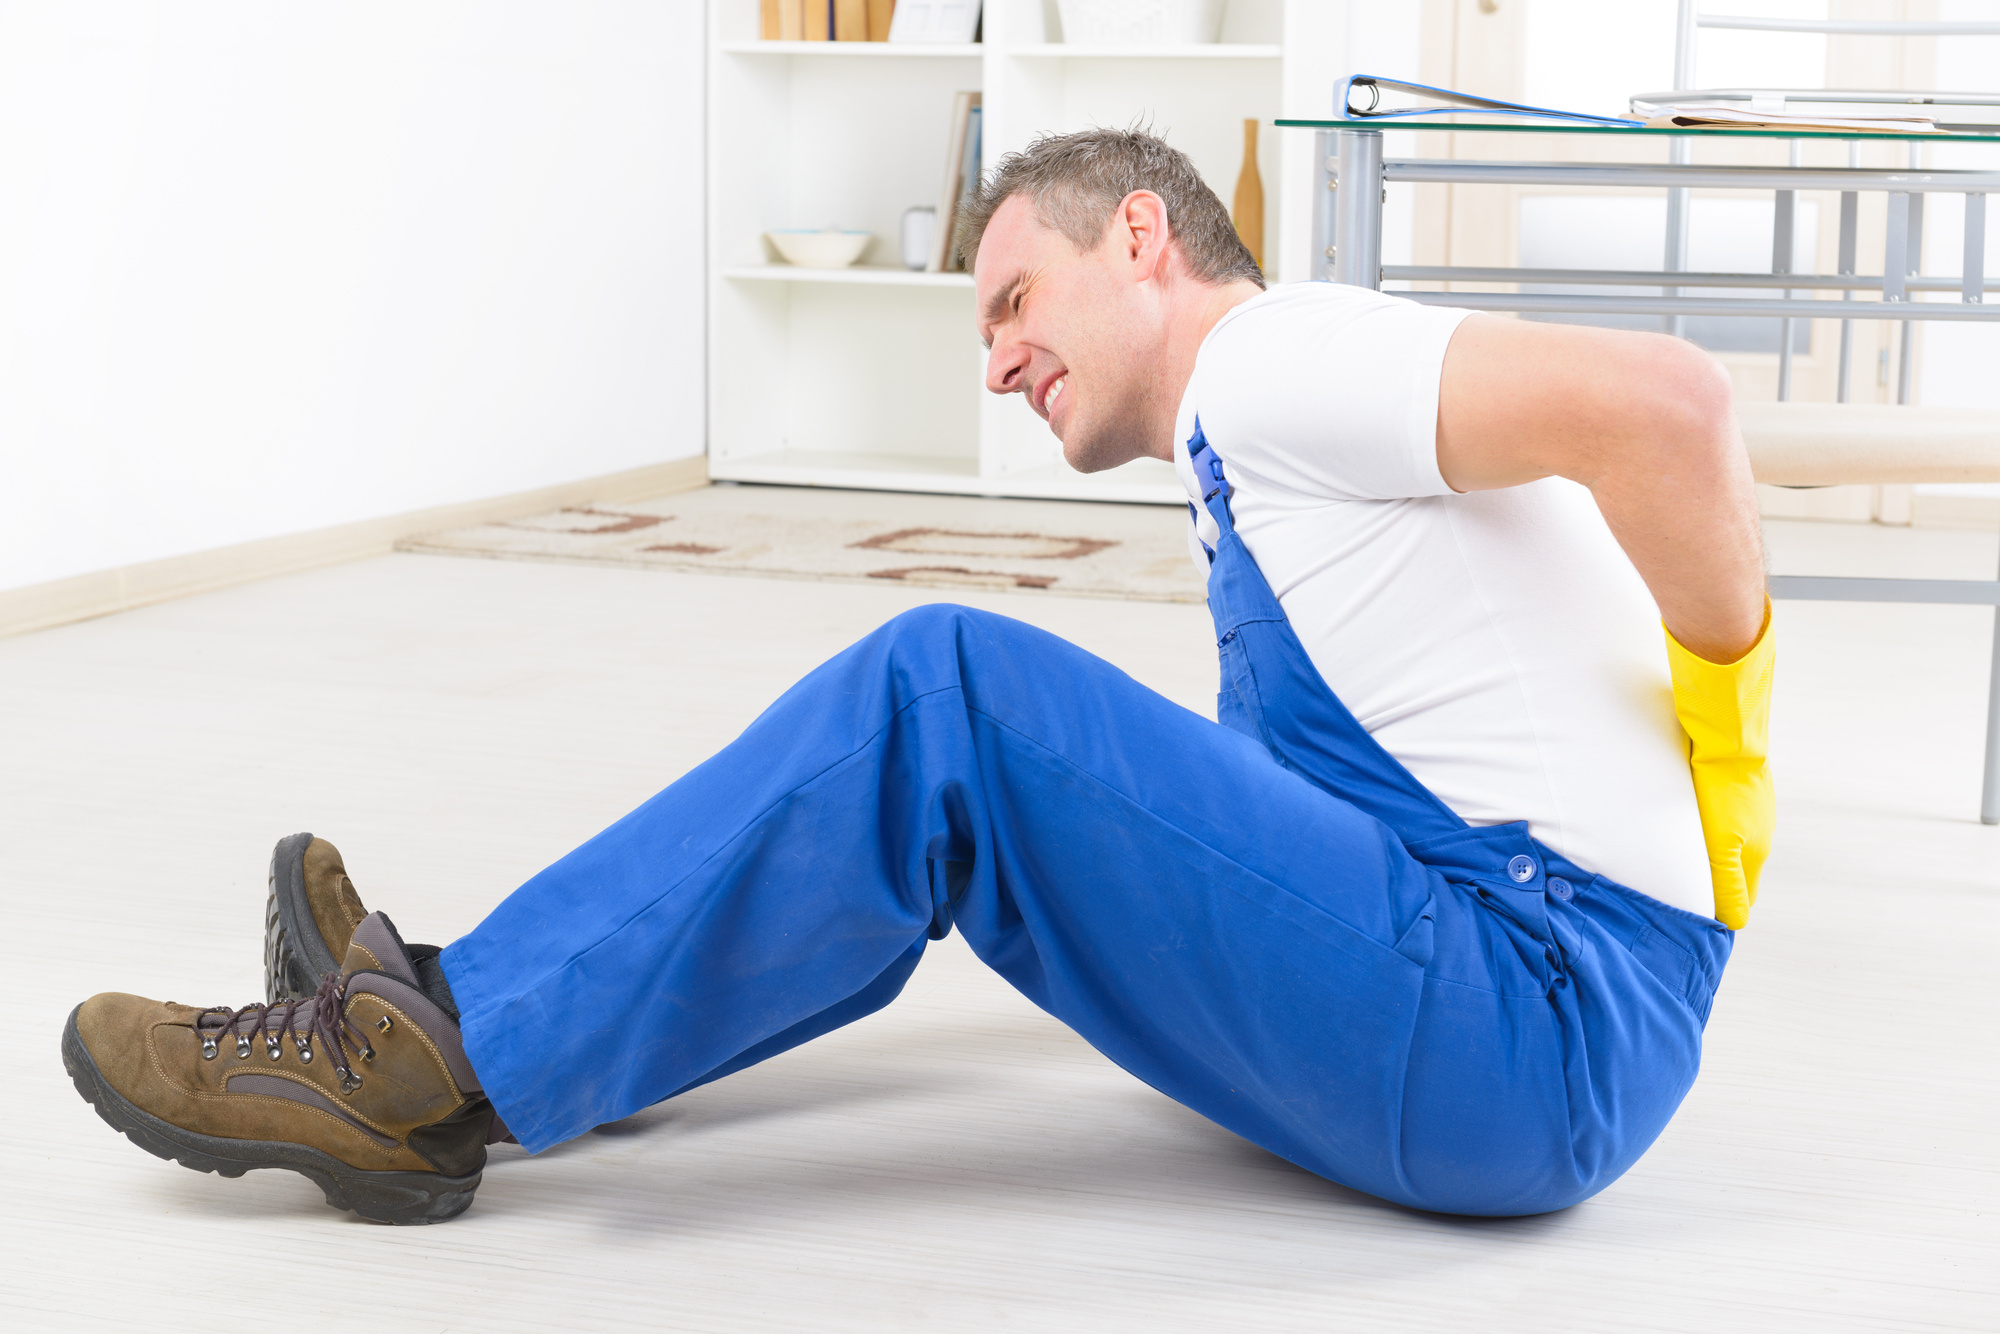 man sitting on the floor in pain holding his back after a fall personal injury lawsuit